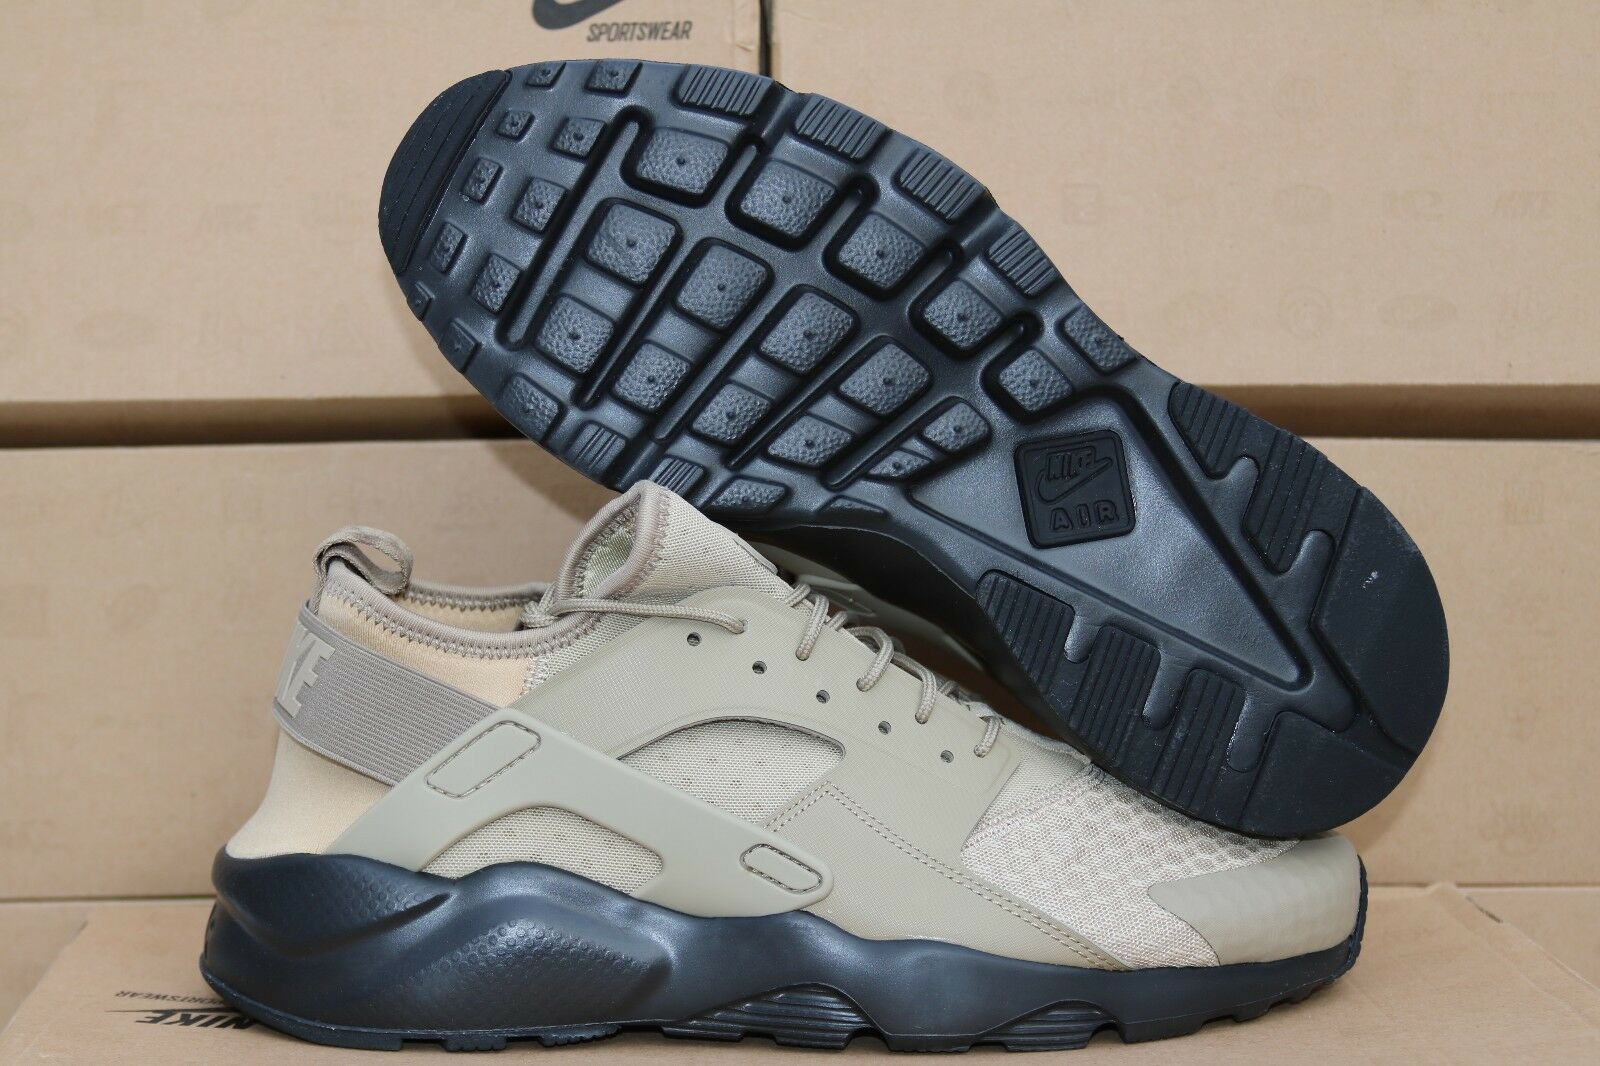 NIB-Nike Air Huarache Run Ultra Men's Casual Shoes Sz. 11